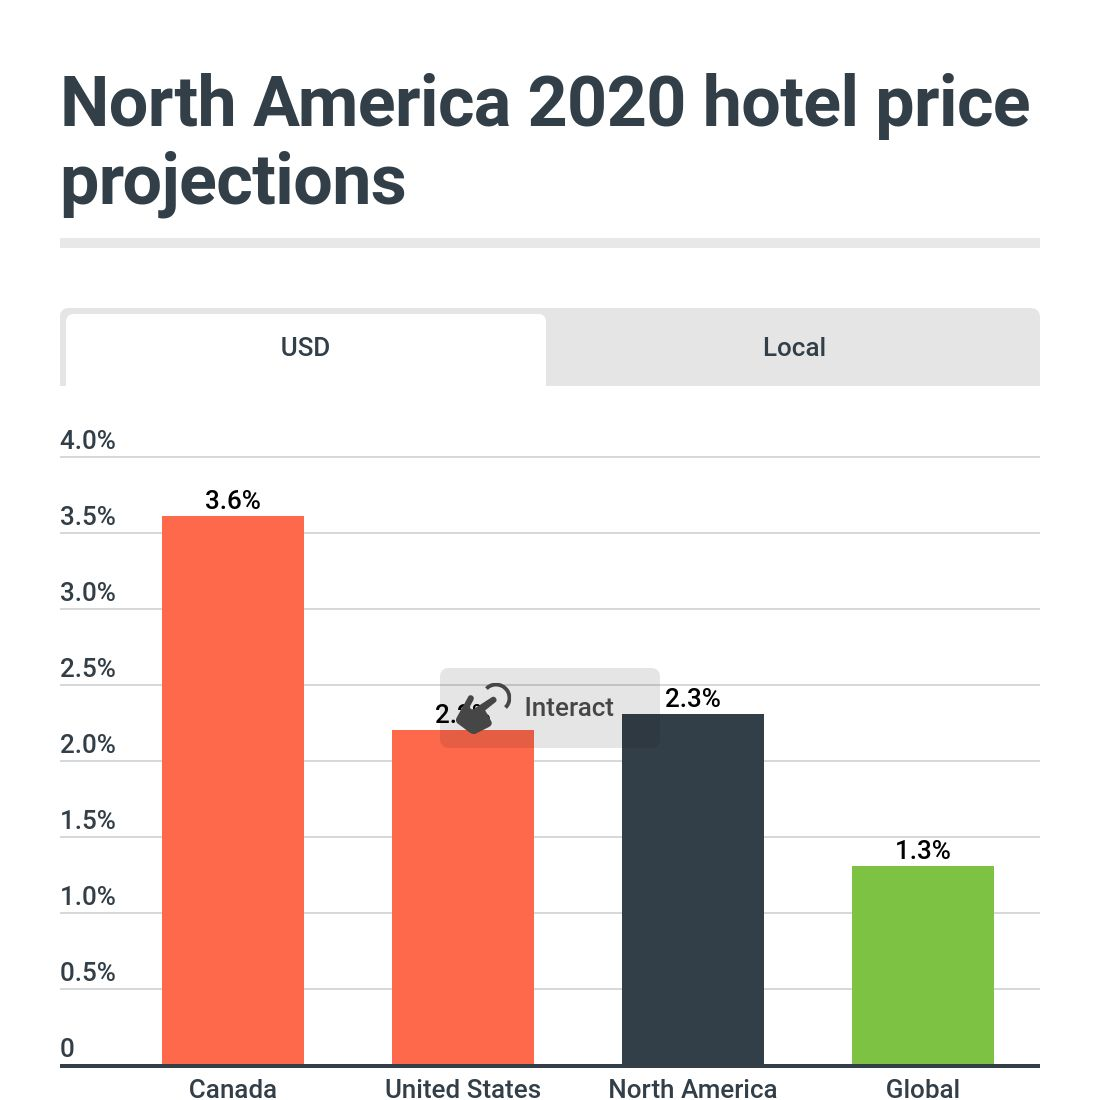 Standard Business Mileage Rate 2020.2020 Global Travel Forecast